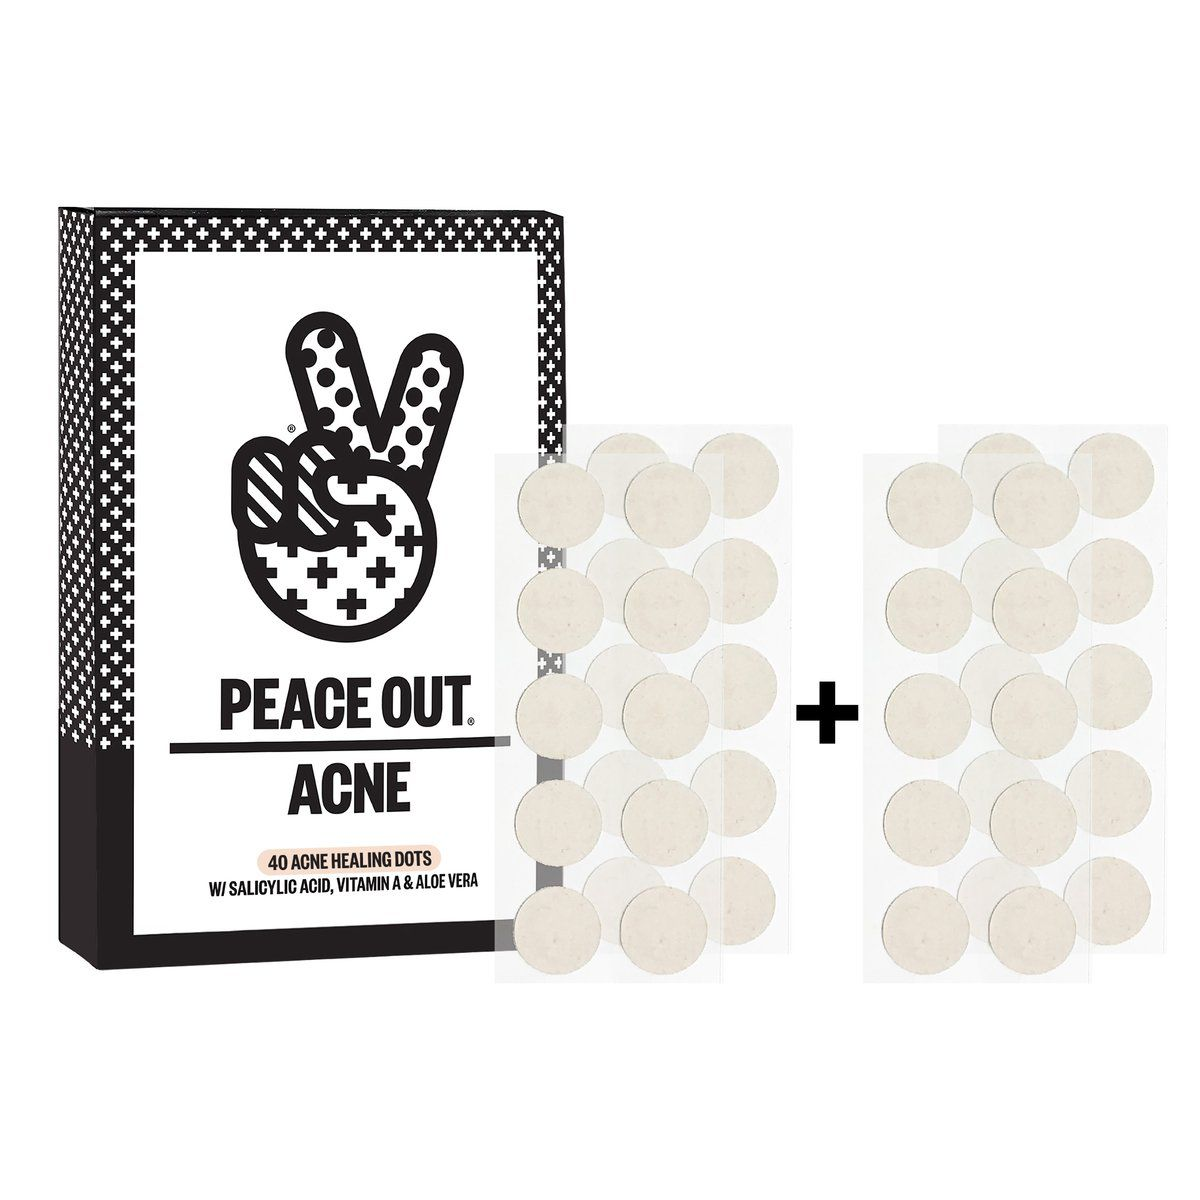 peace out dots